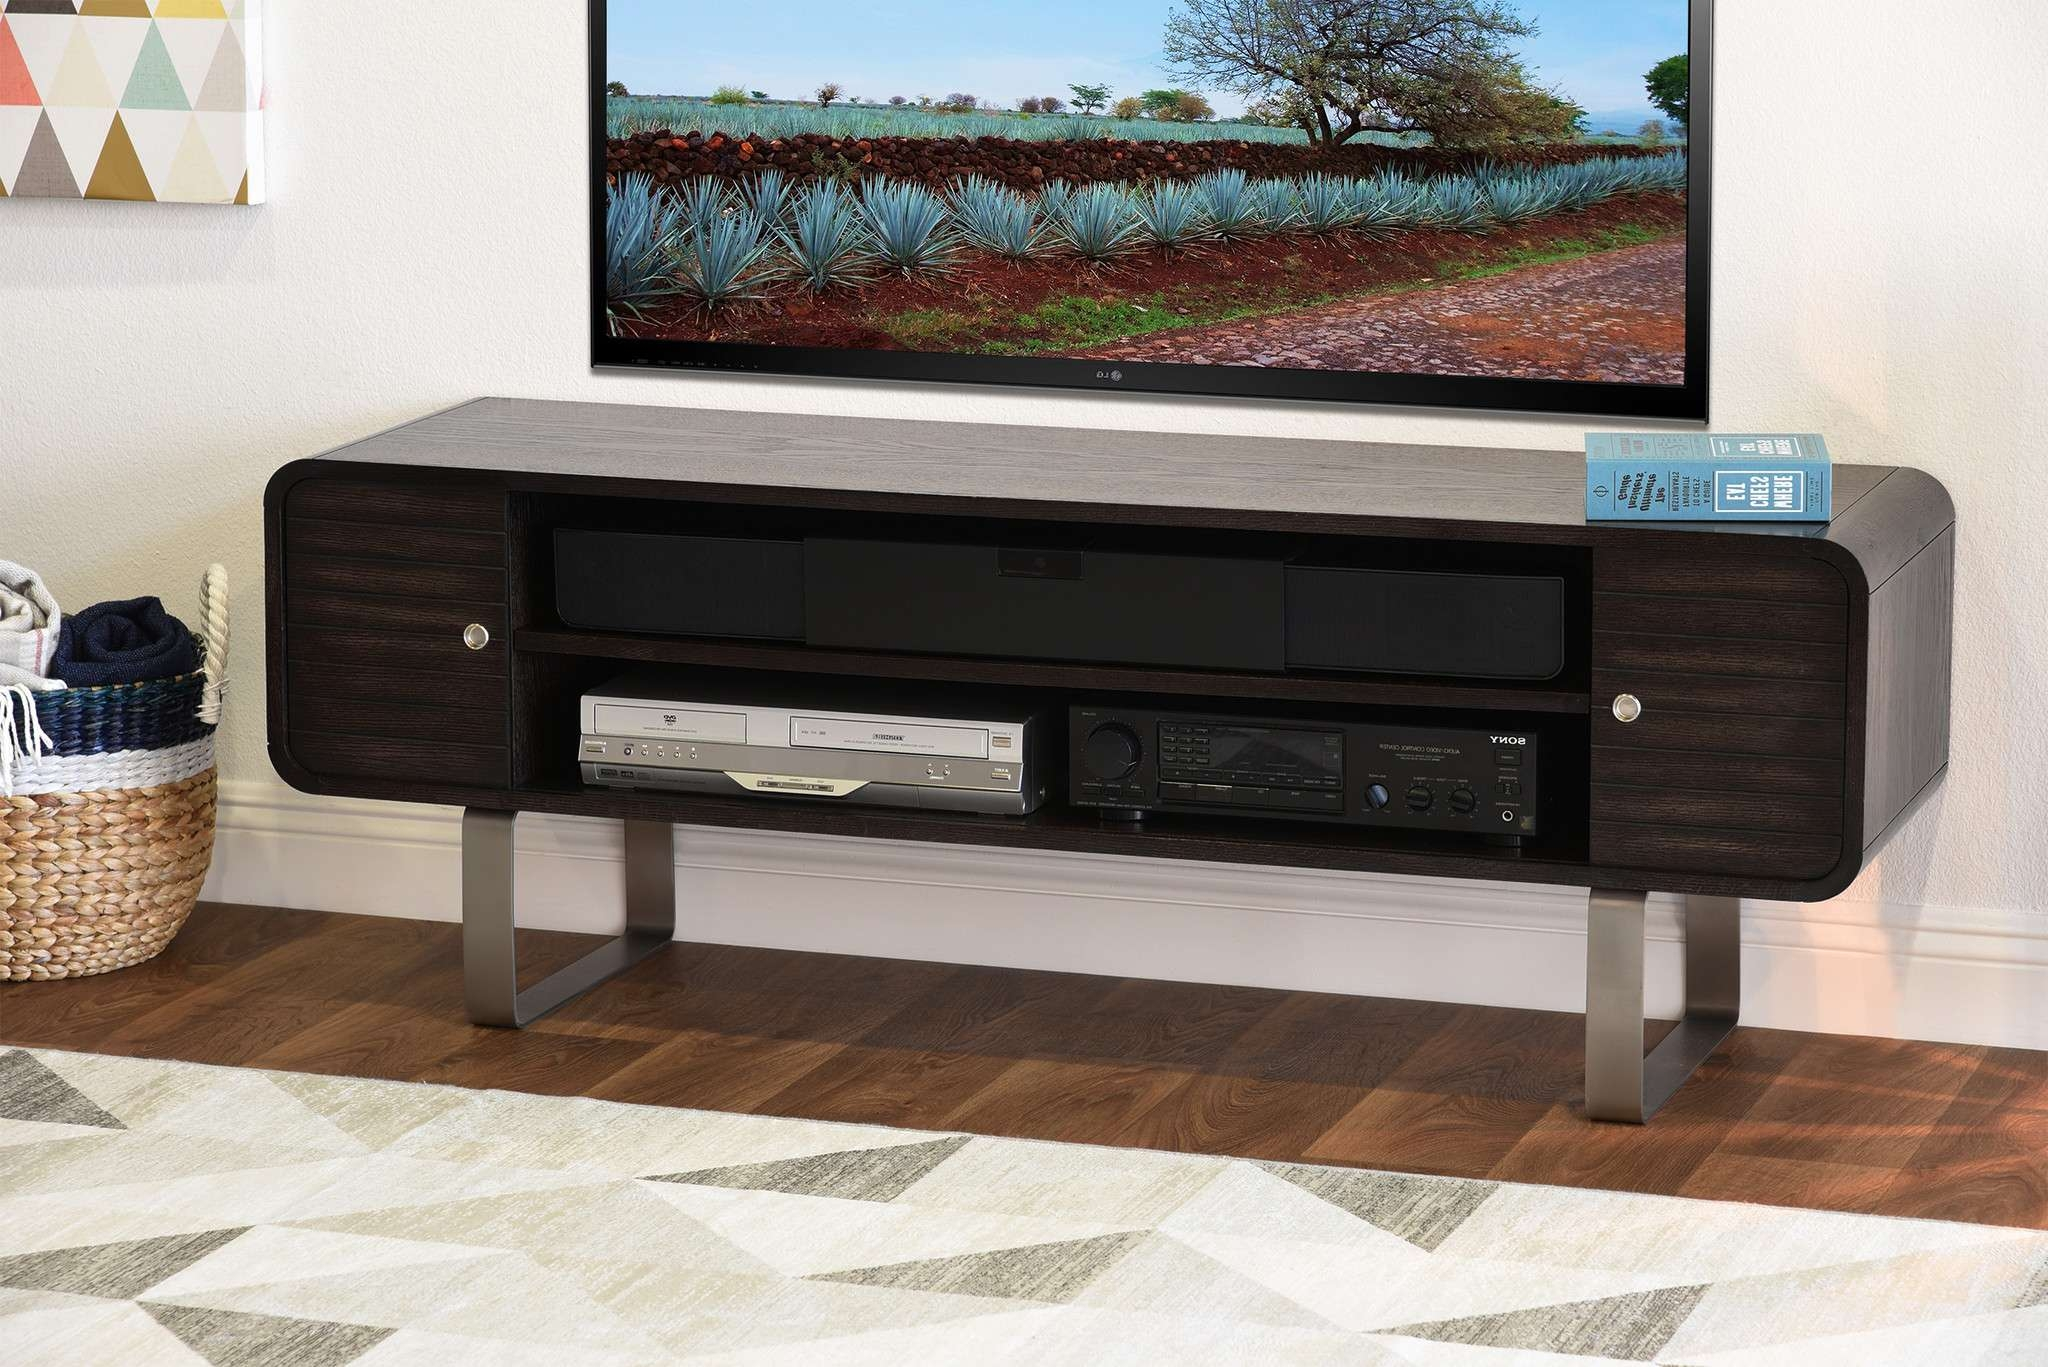 Tv Stand With Rounded Corners – Round Designs With Regard To Round Tv Stands (View 11 of 15)